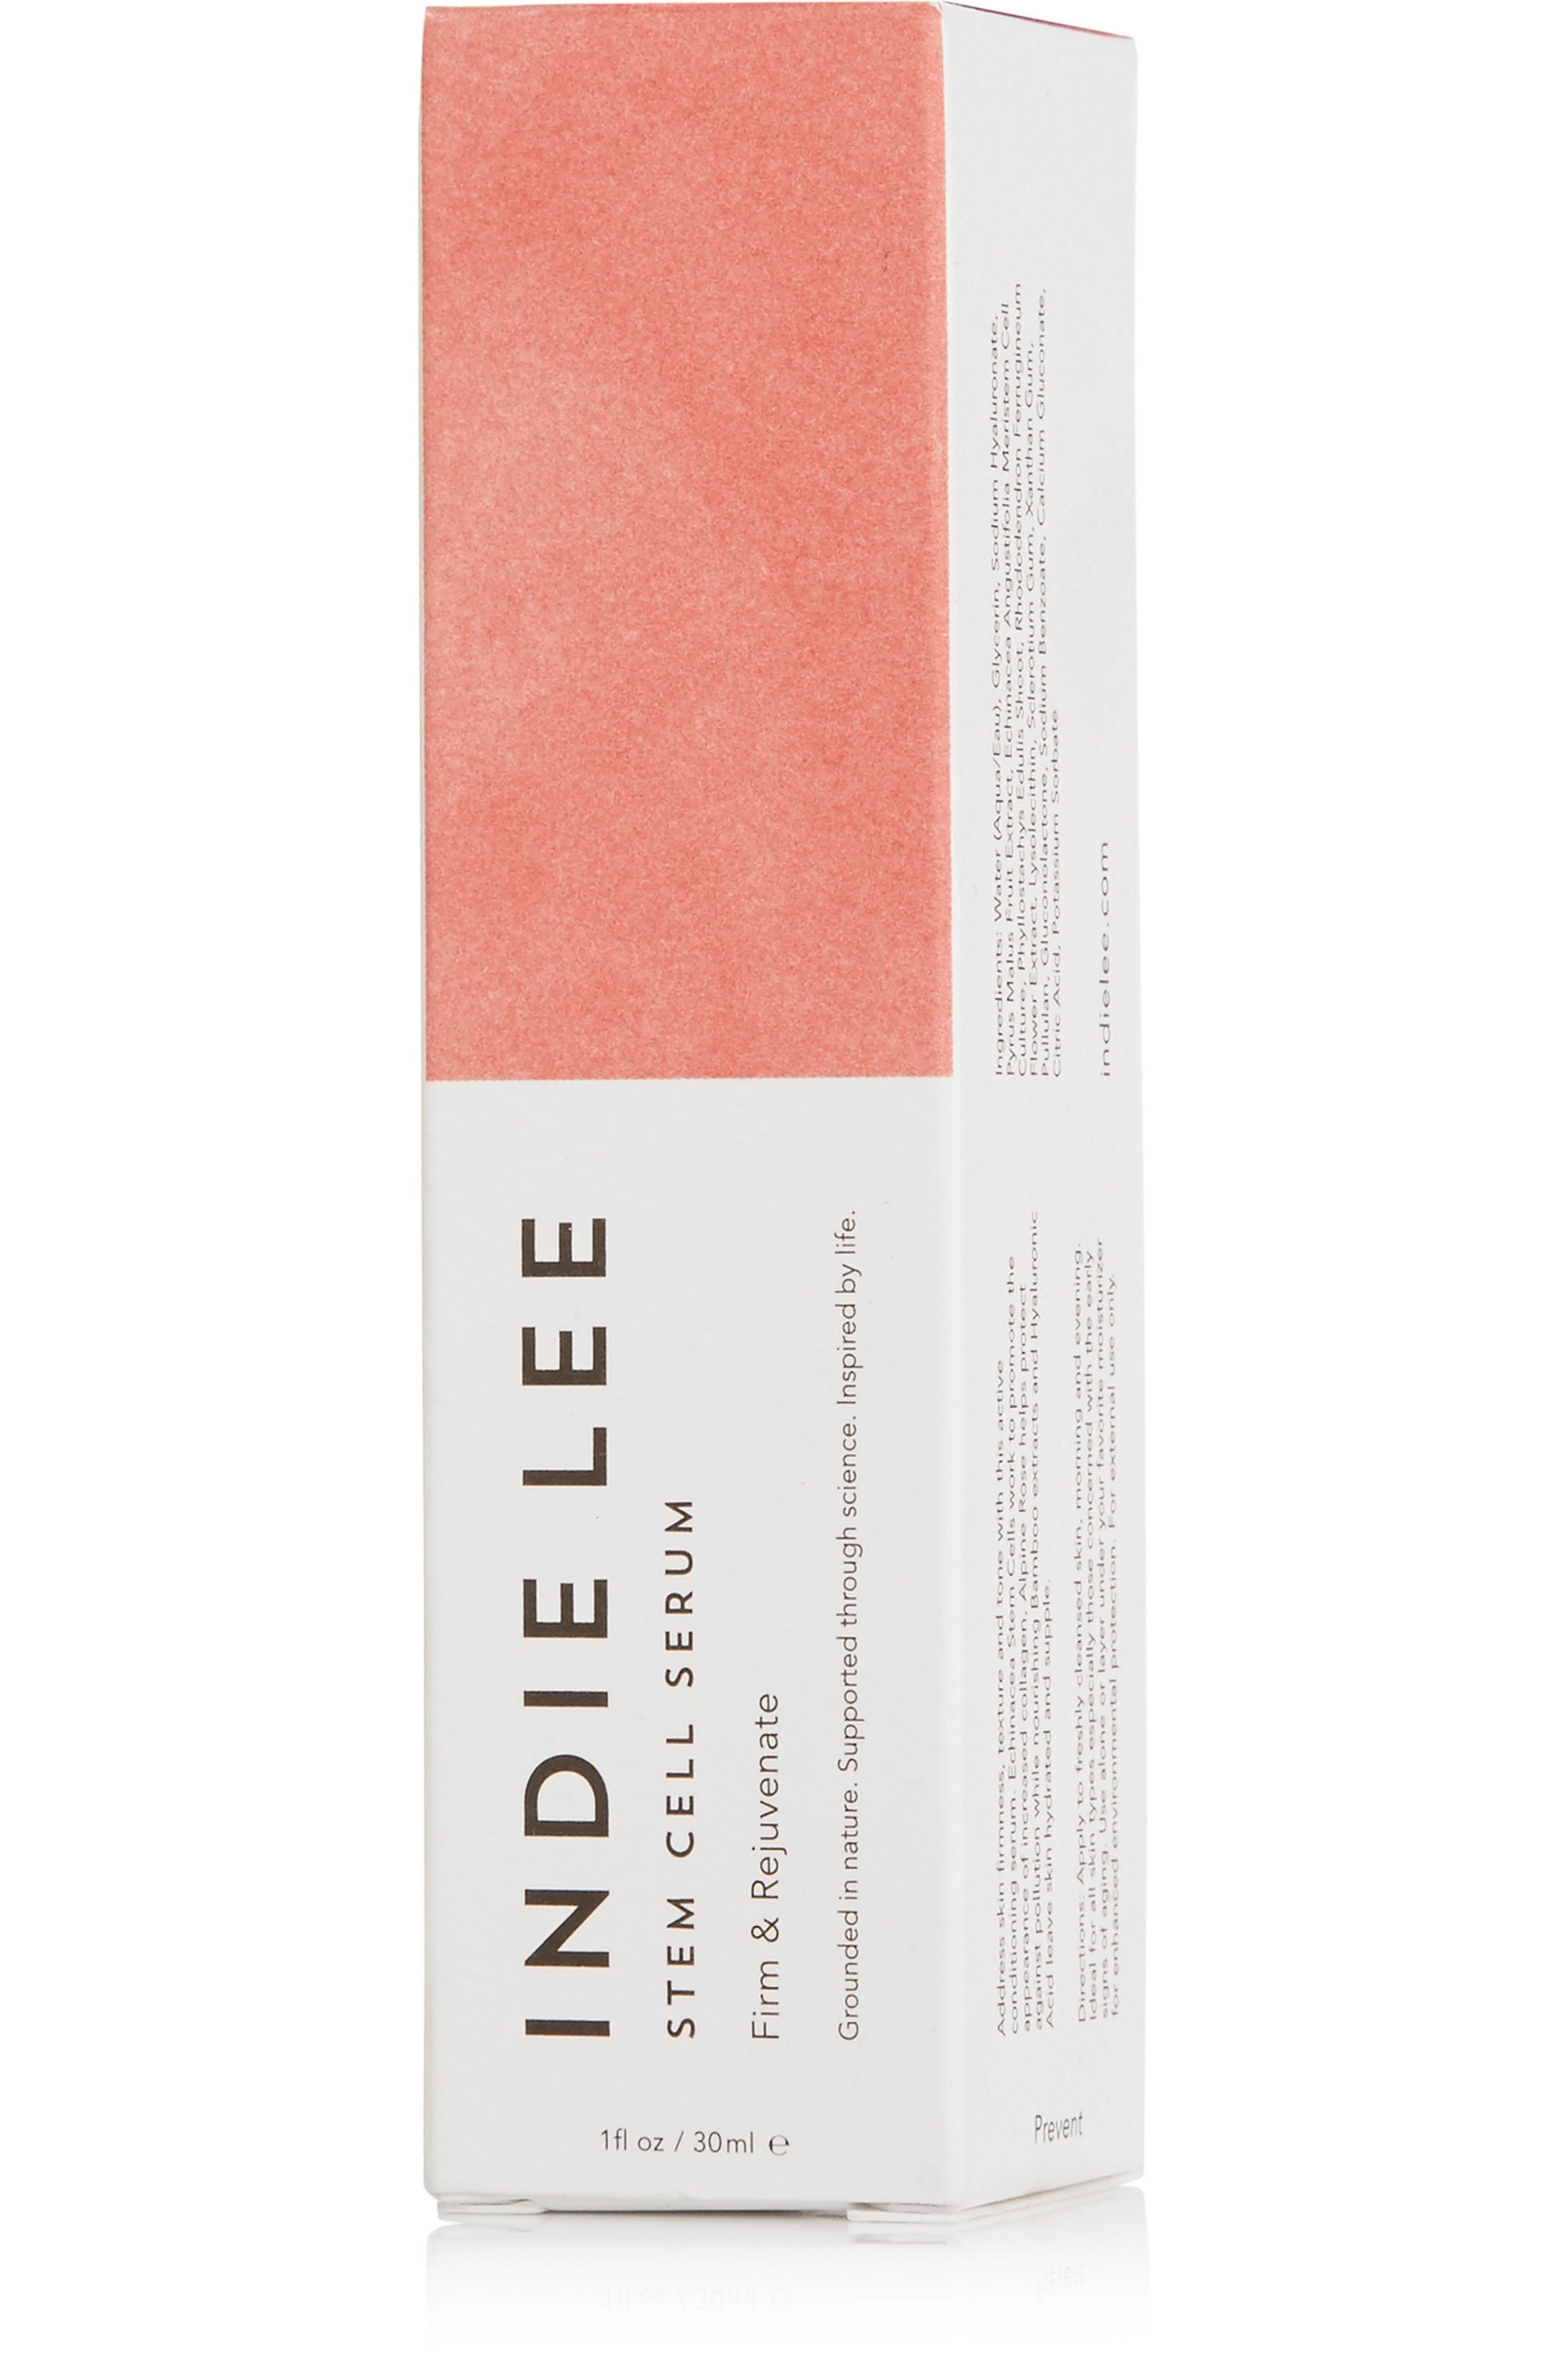 Indie Lee Stem Cell Serum, 30ml